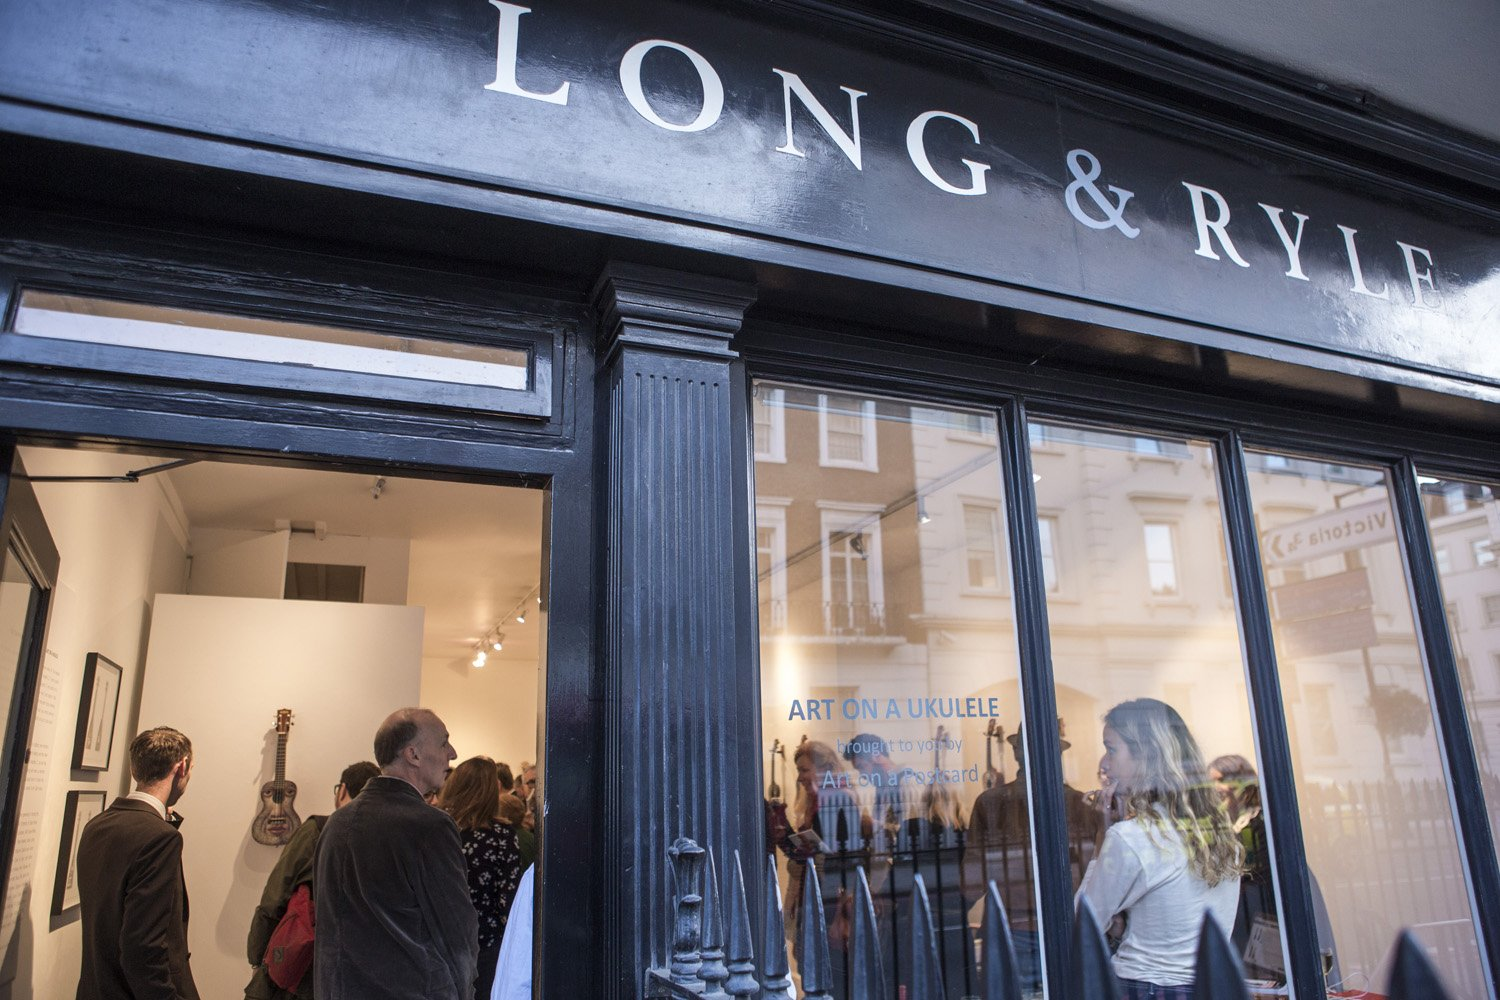 Long & Ryle opens for the Private View